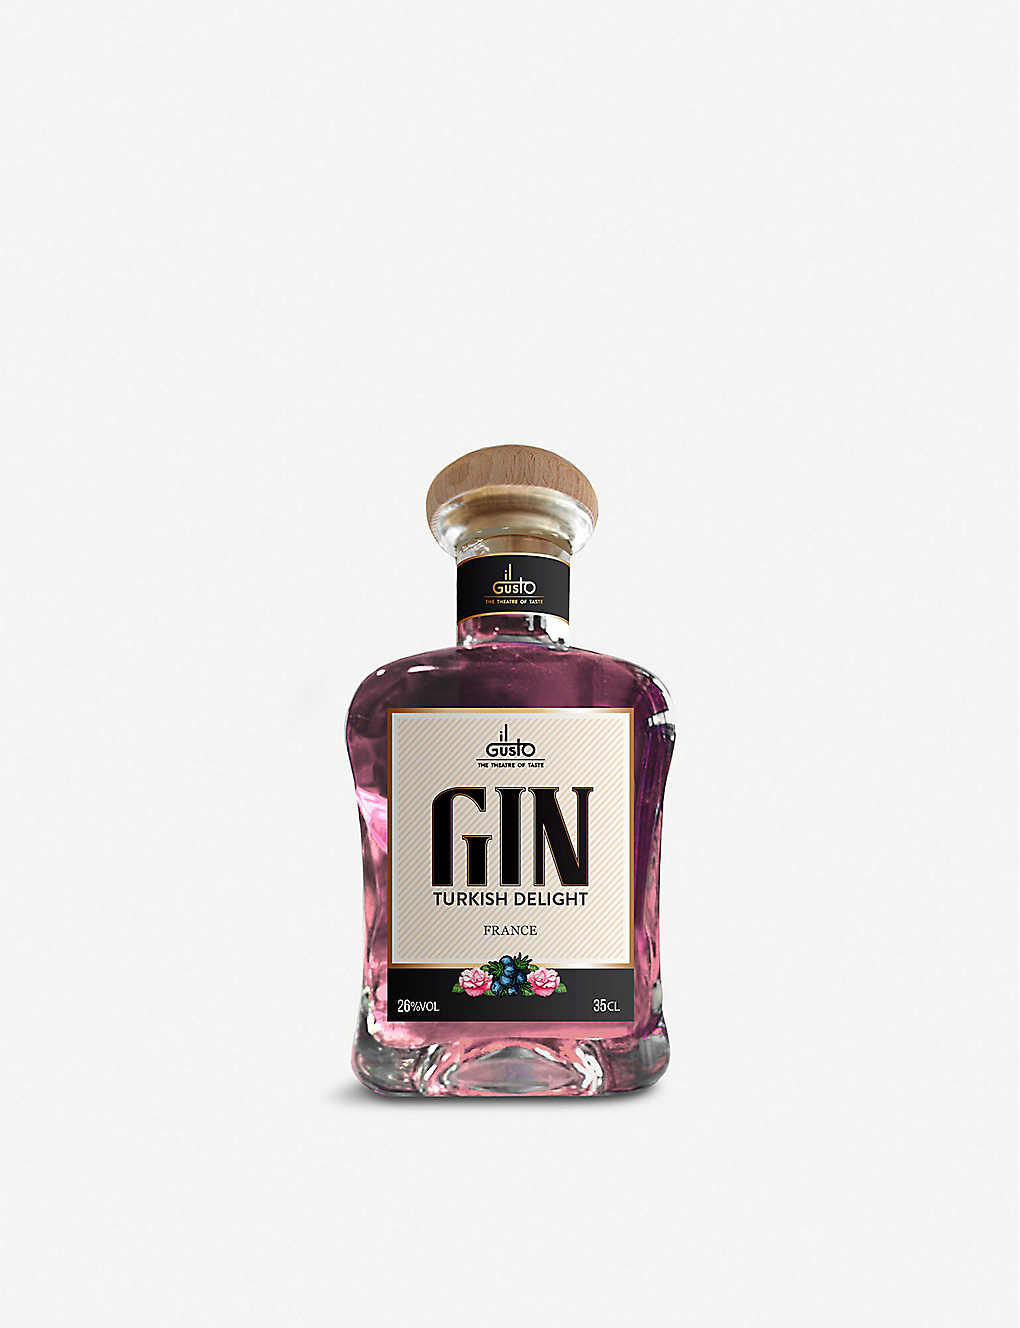 IL GUSTO: Turkish Delight gin 350ml